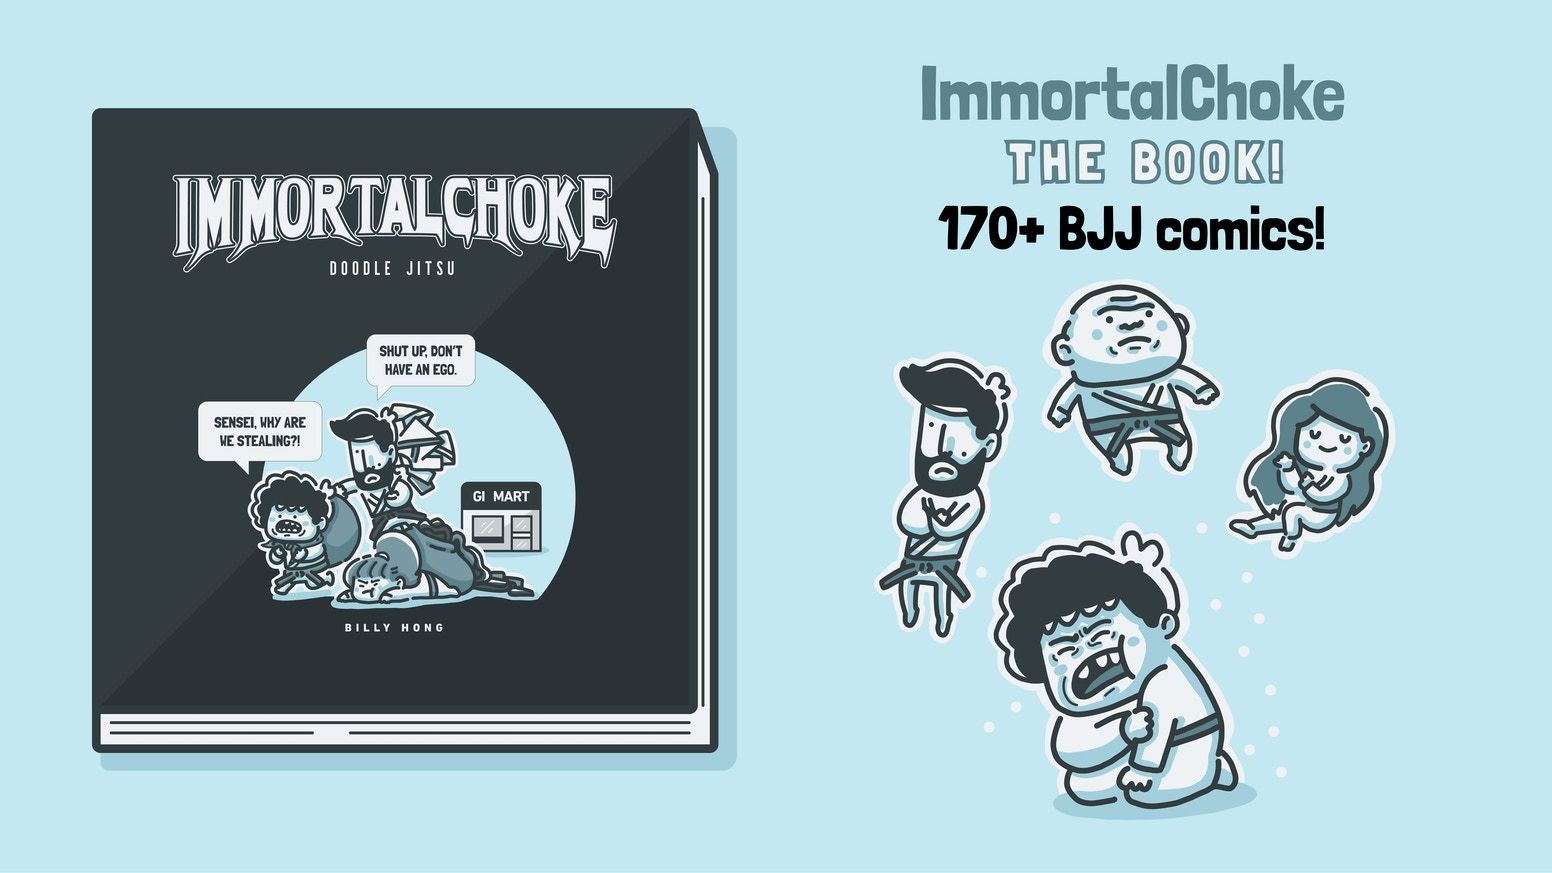 The very first ImmortalChoke book of daily BJJ comics!